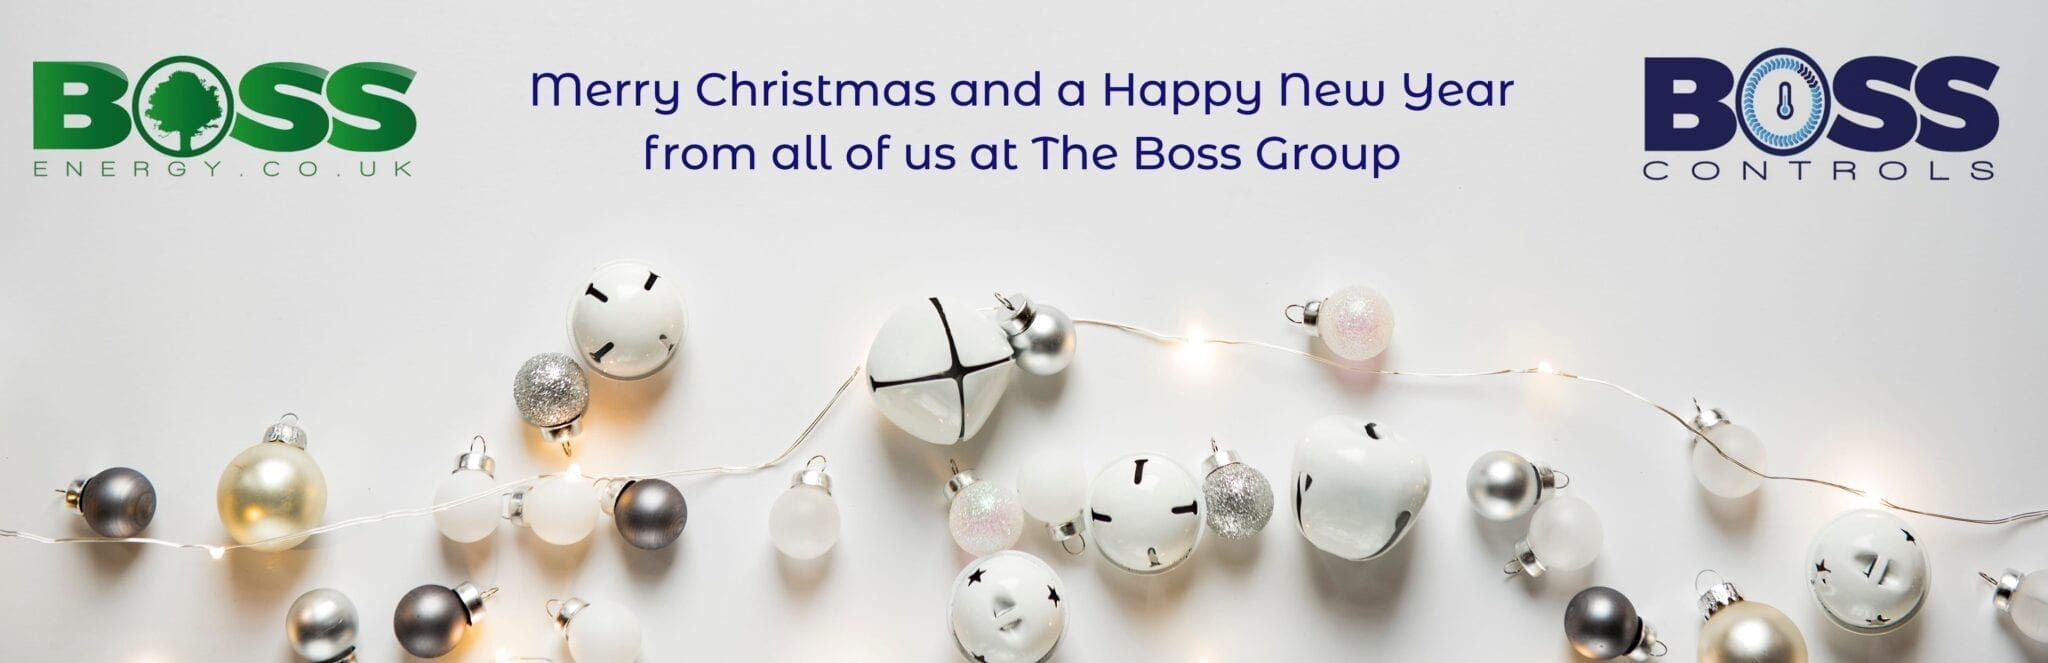 Happy Christmas from Boss Controls and Boss Energy